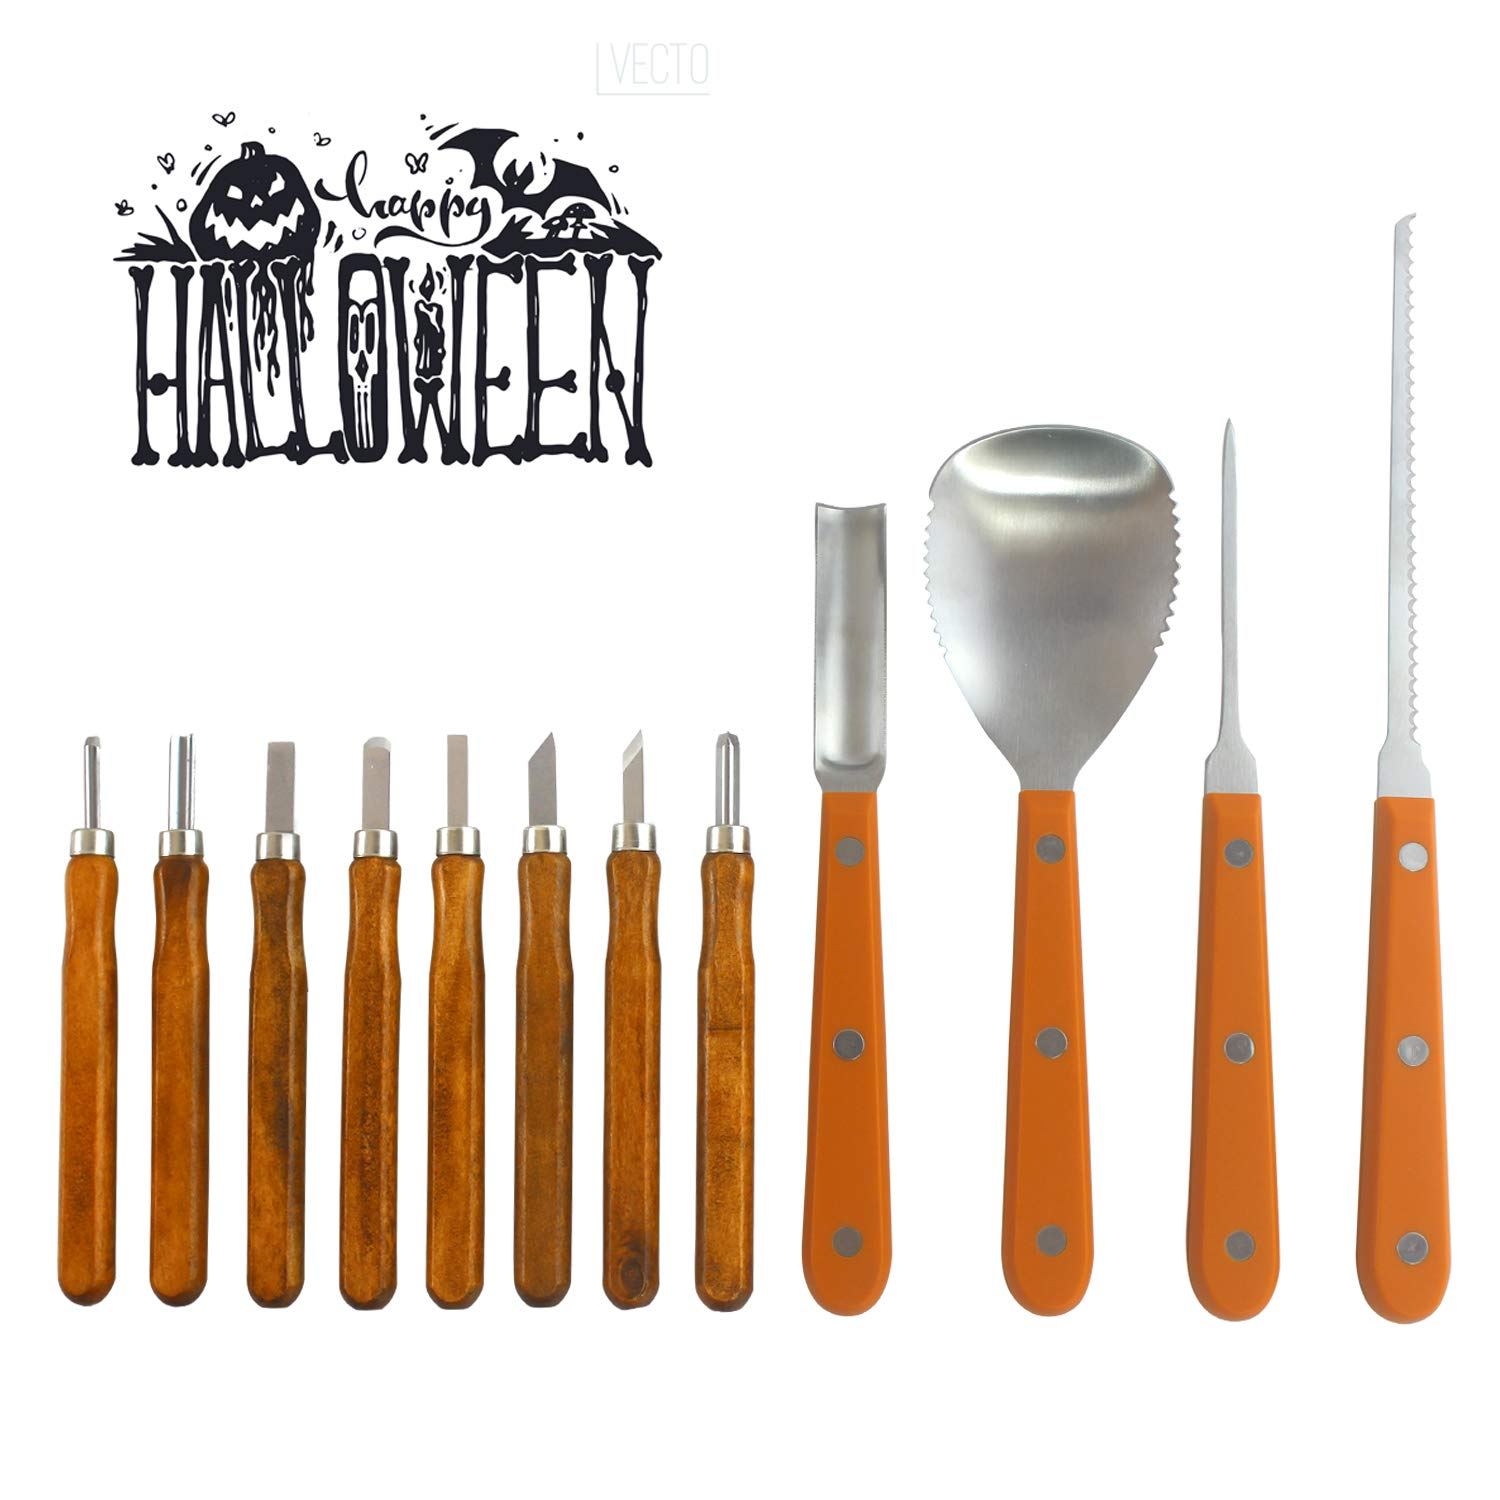 Pumpkin Carving Kit - 12 Piece Heavy Duty Stainless Steel pumpkin carving tools , Easily Carve Sculpt Halloween Jack-O-Lanterns, Carving Tools Make Great Spooky Décor by Halloween Art (Image #3)